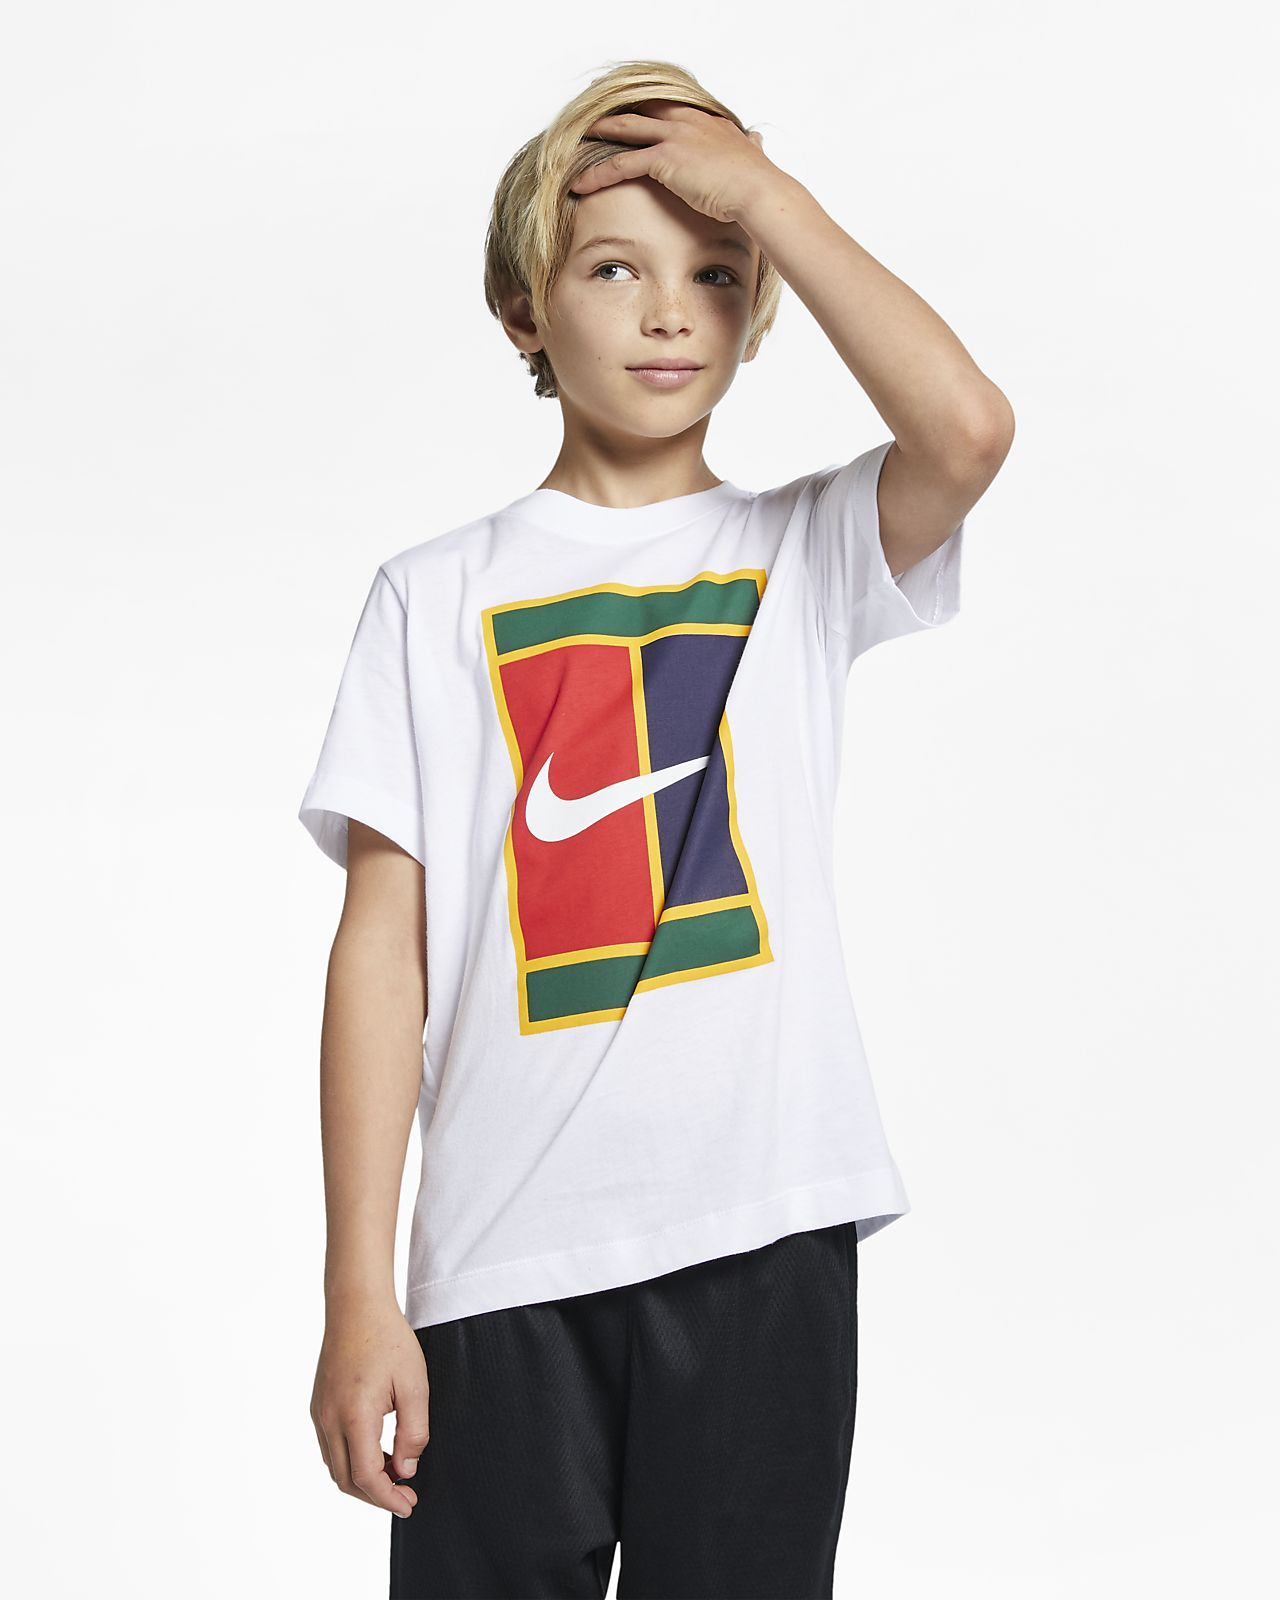 NikeCourt Older Kids' (Boys') Tennis T-Shirt